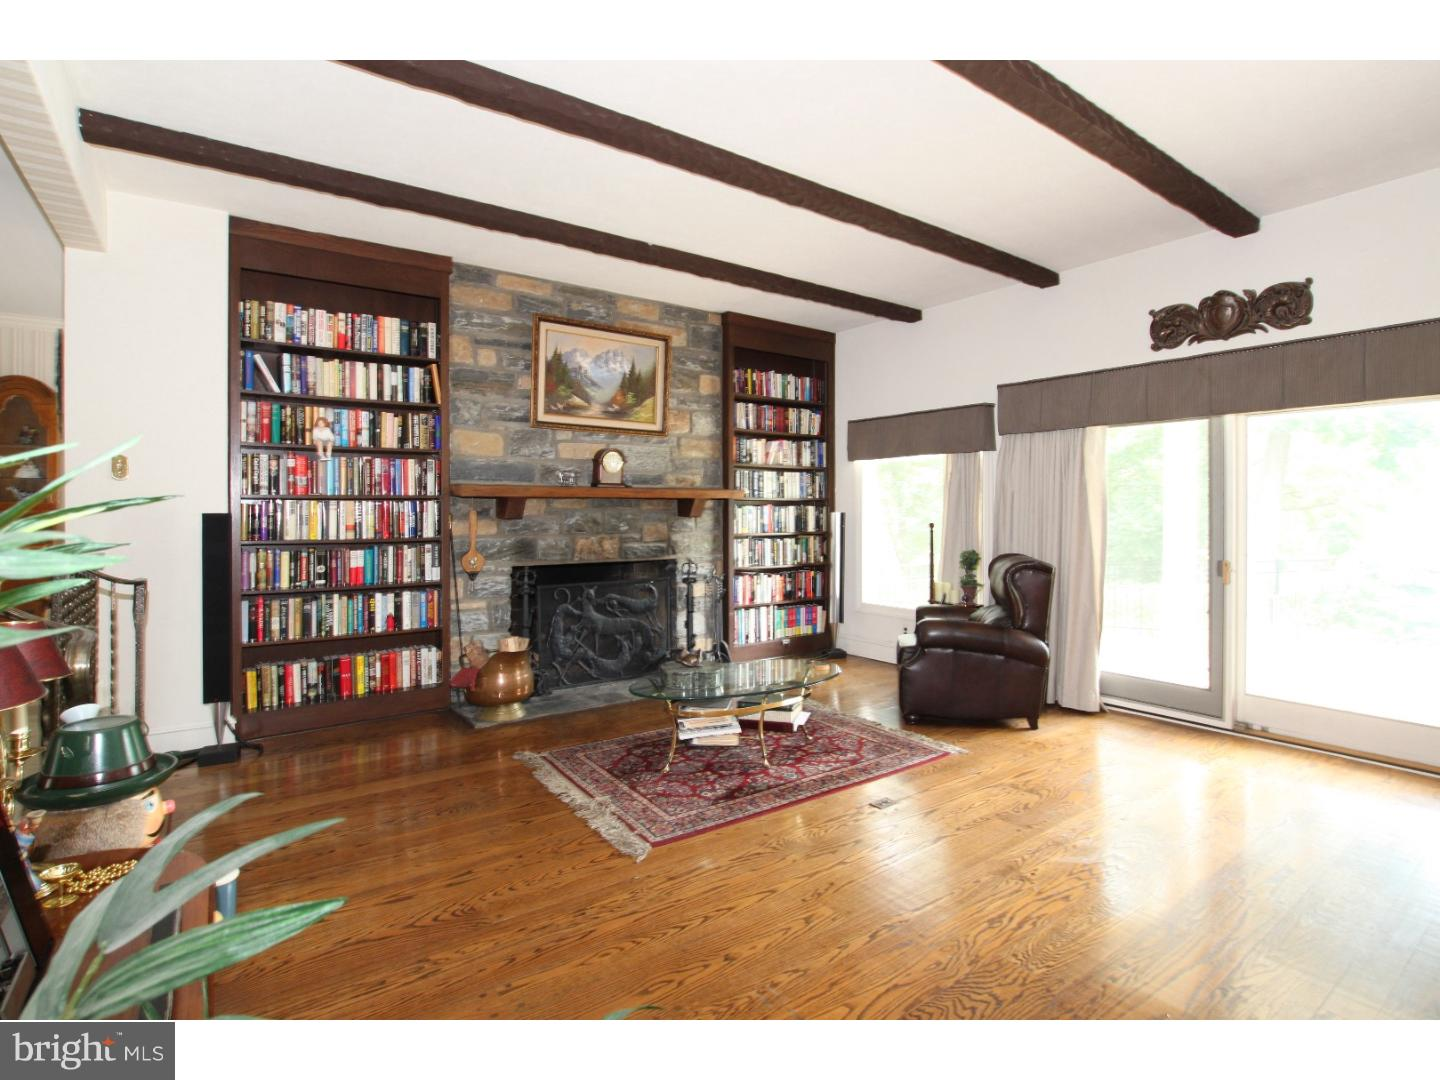 Single Family Home for Sale at 908 PENN VALLEY Road Media, Pennsylvania 19063 United States